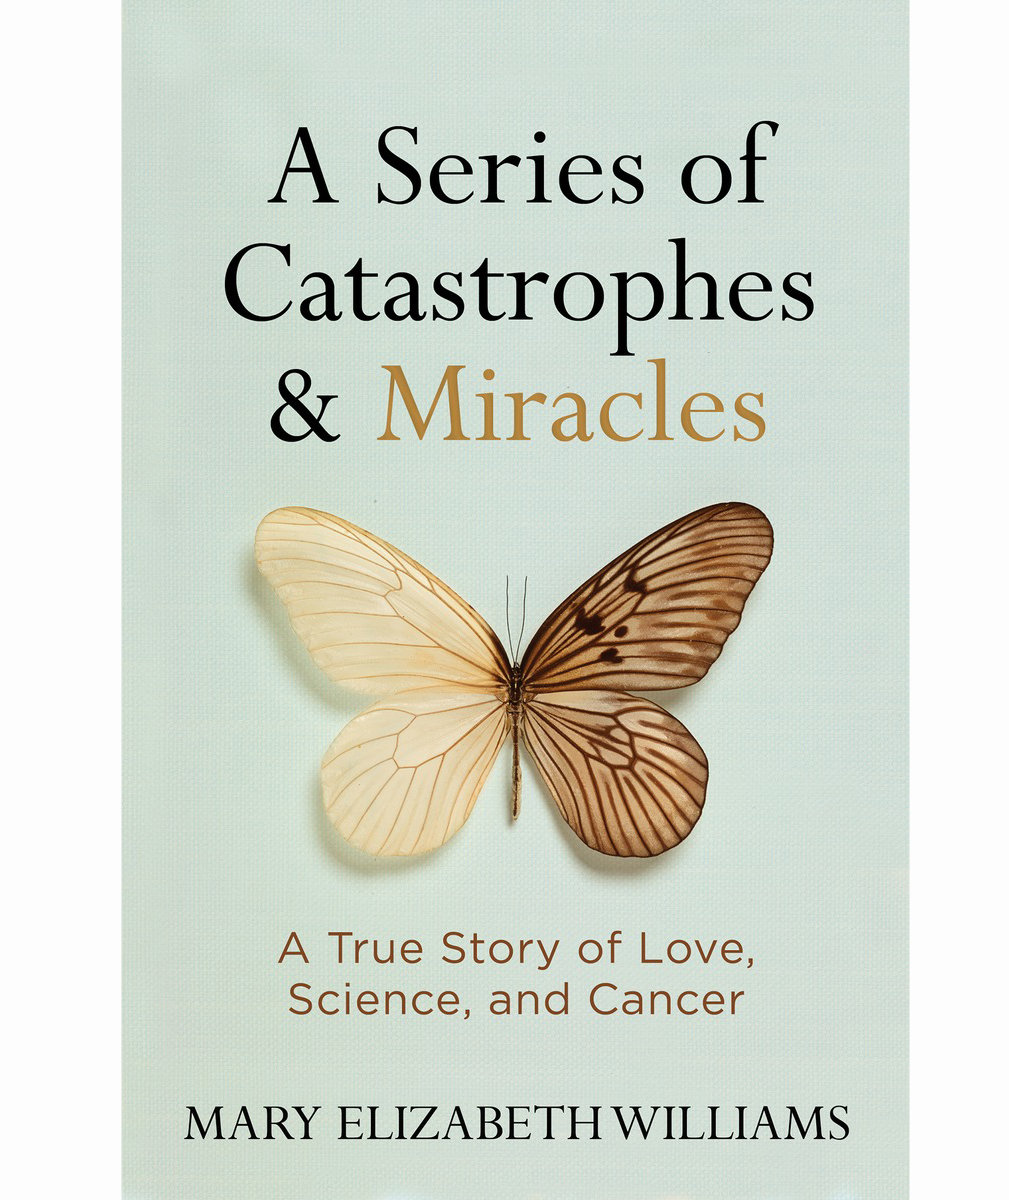 series-of-catastrophes-miracles